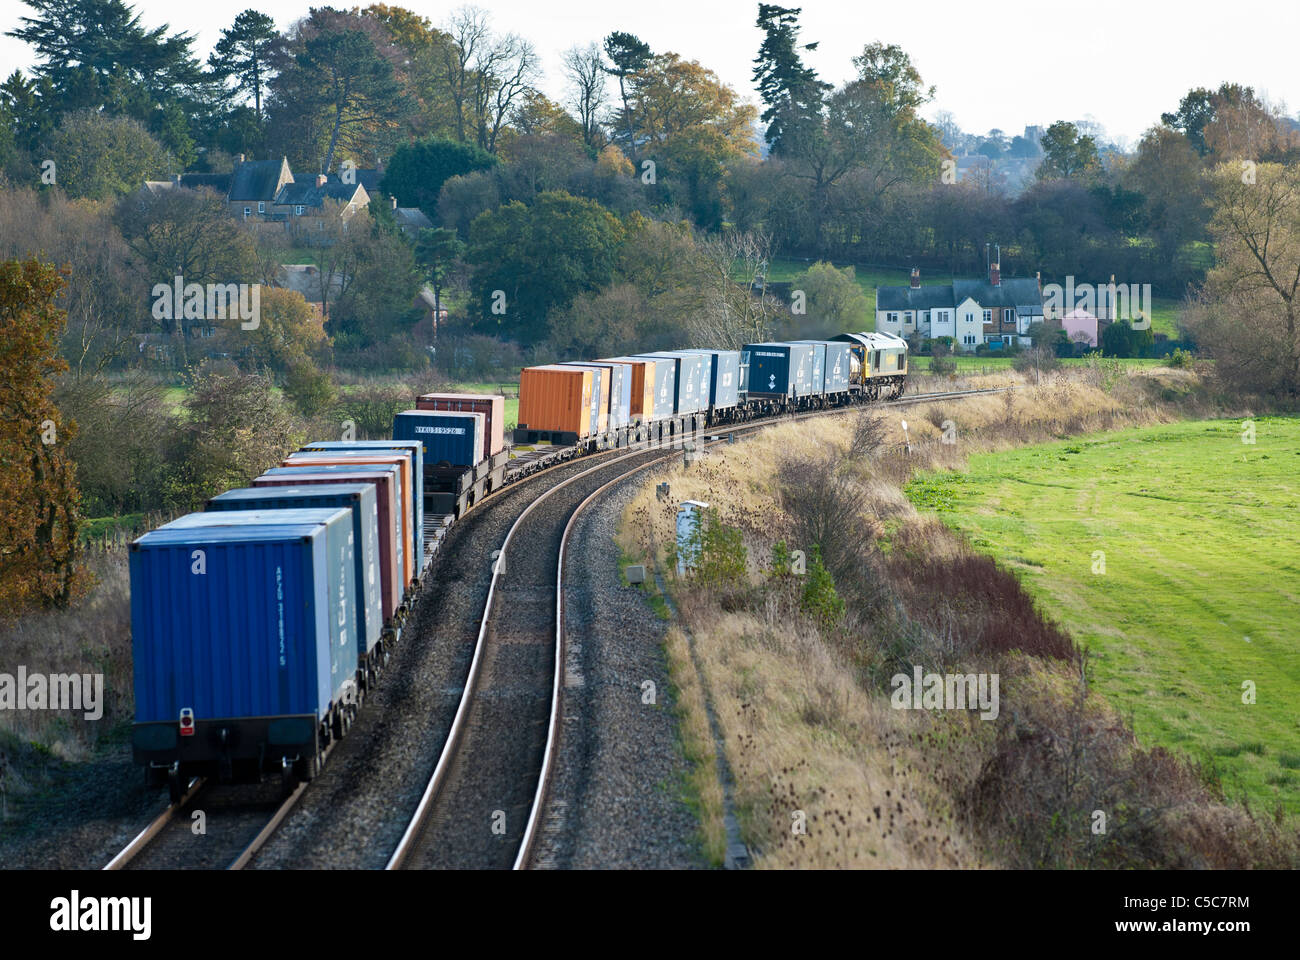 Goods train carrying freight containers - Stock Image